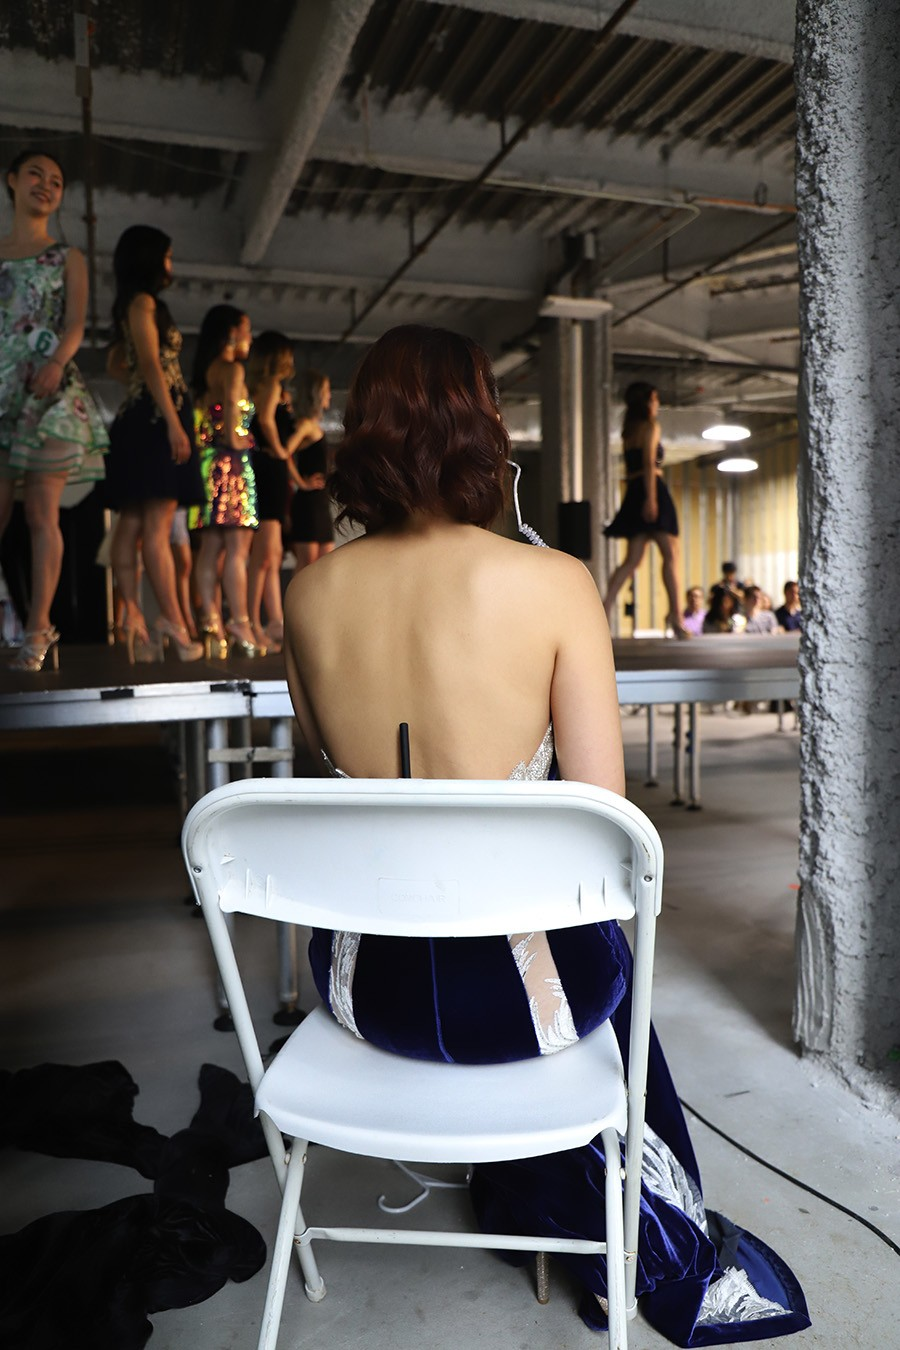 Ng watches the contestants promenade during the pageant. - CAROLYN CHEN